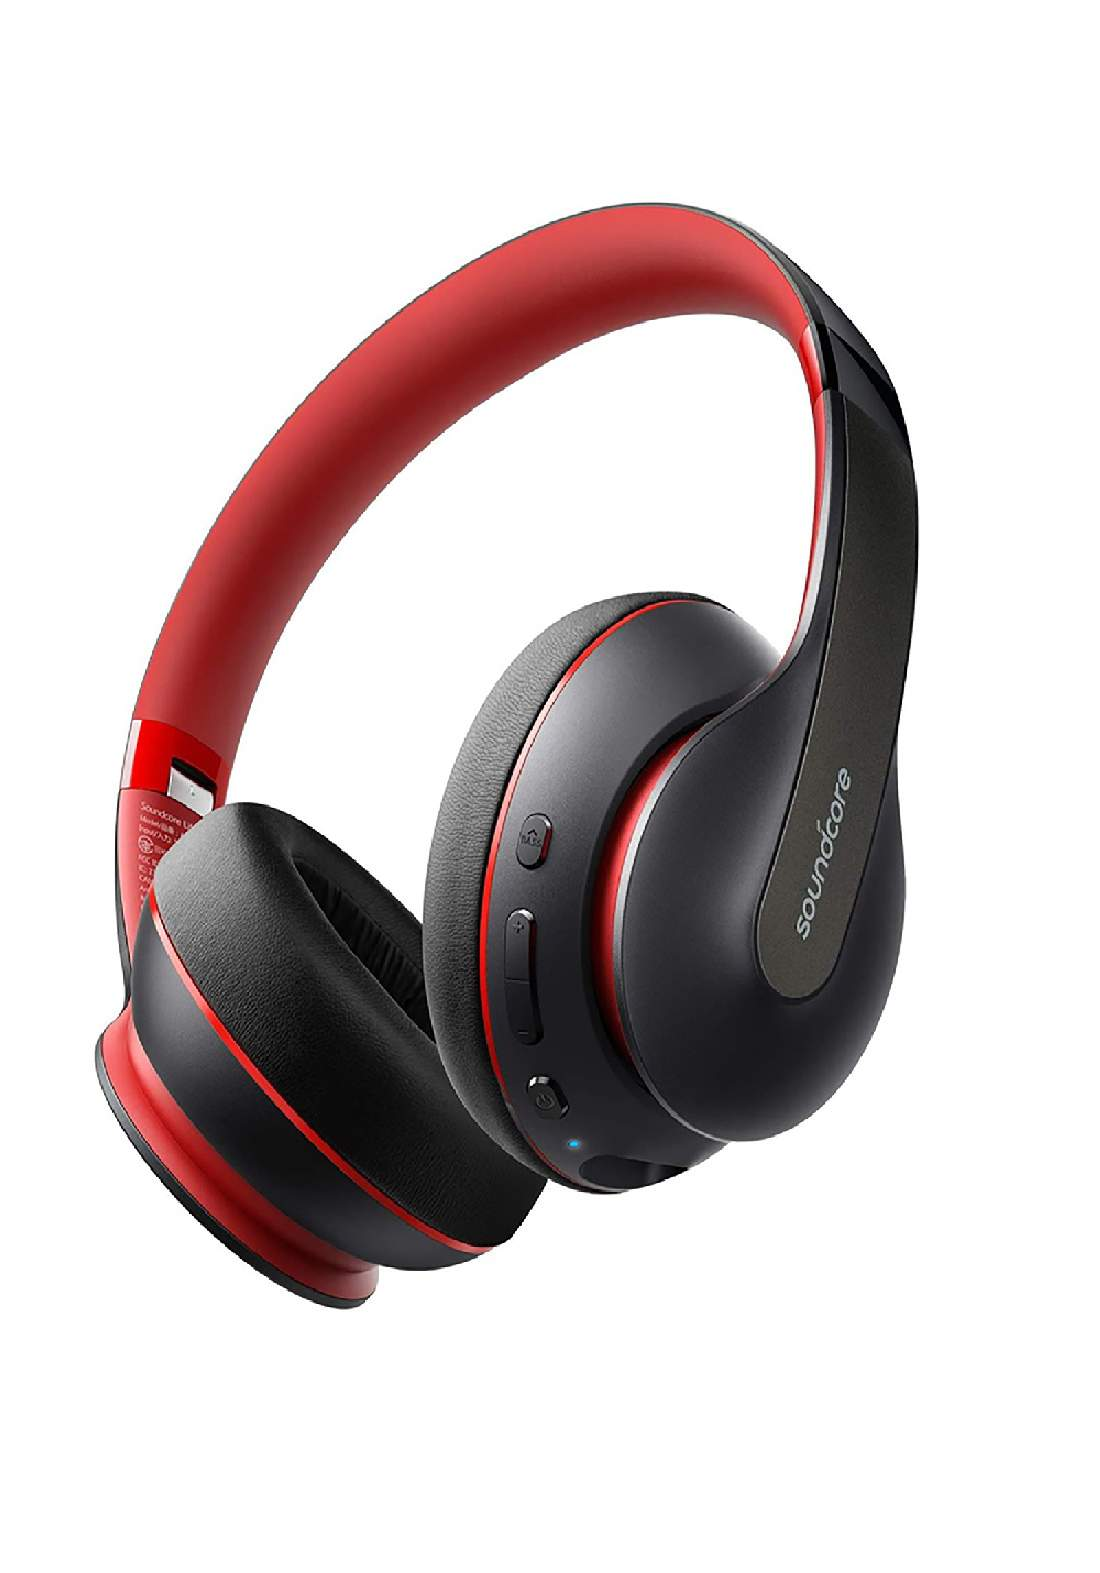 Anker A3032 Soundcore Life Q10 Wireless Bluetooth Headphones - Red  سماعة